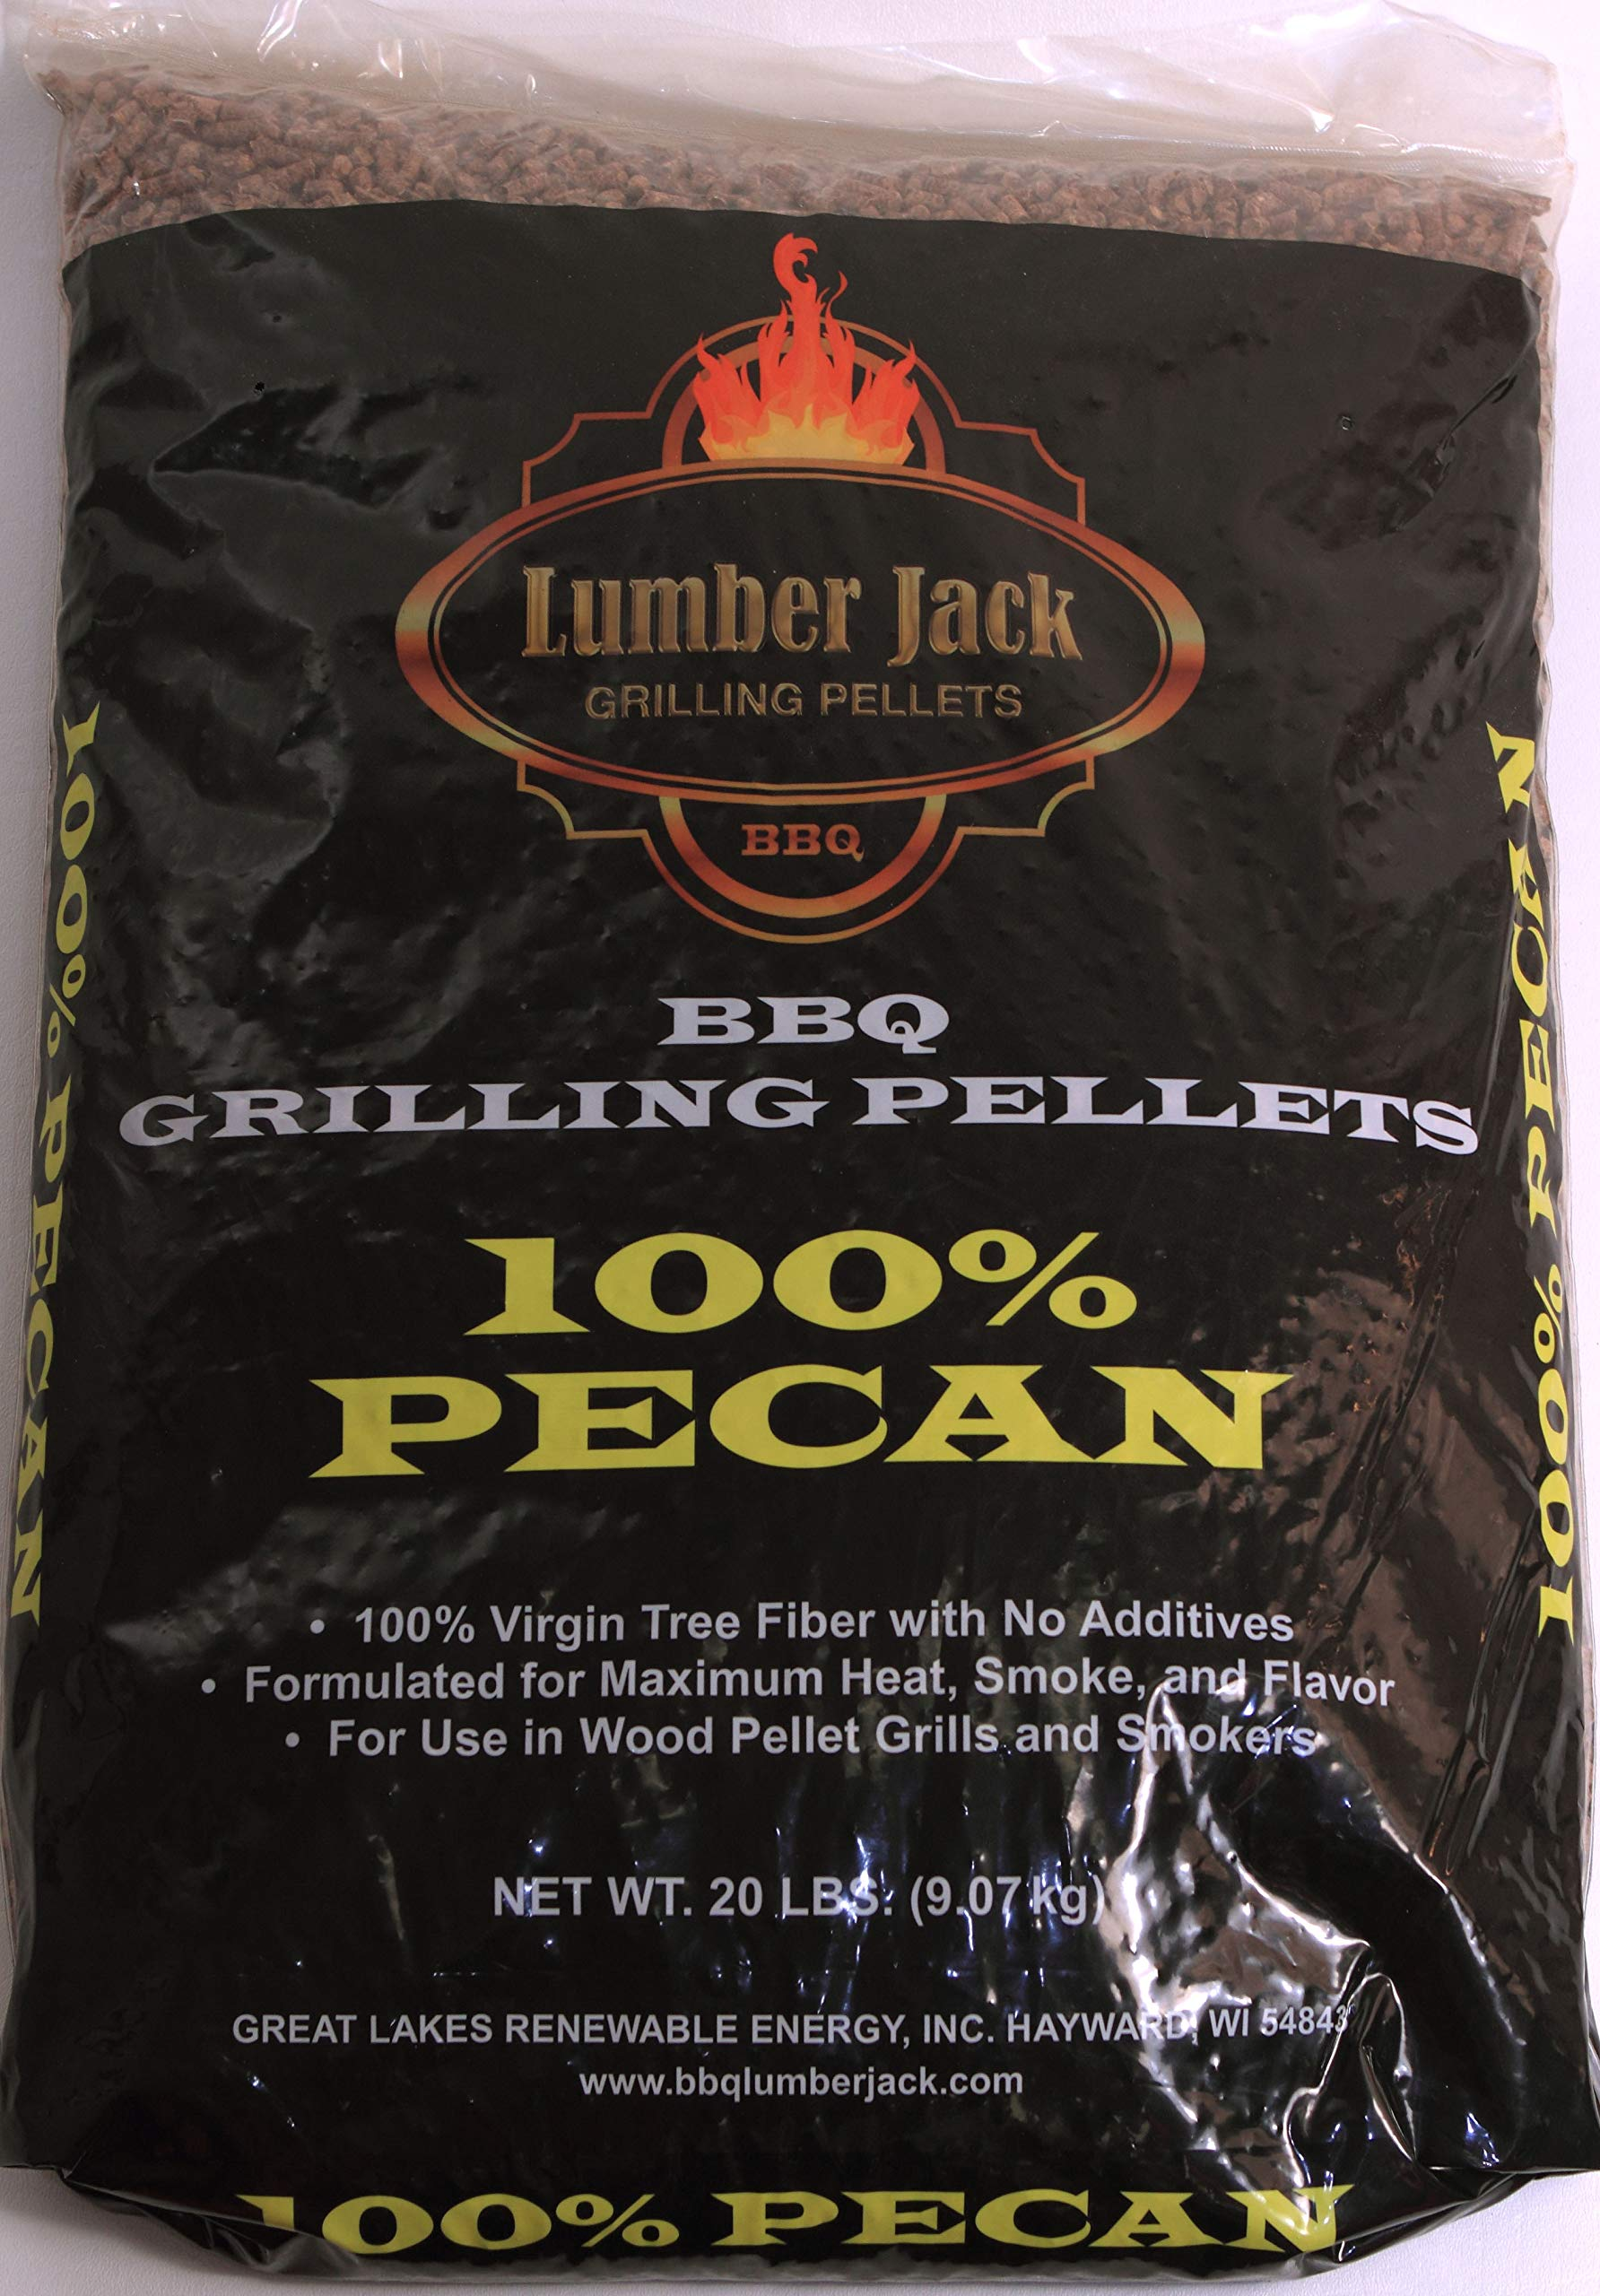 Lumber Jack 100 Percent Pecan BBQ Grilling Pellets 40 Pounds (2 ea 20 Pound Bags) by Lumber Jack